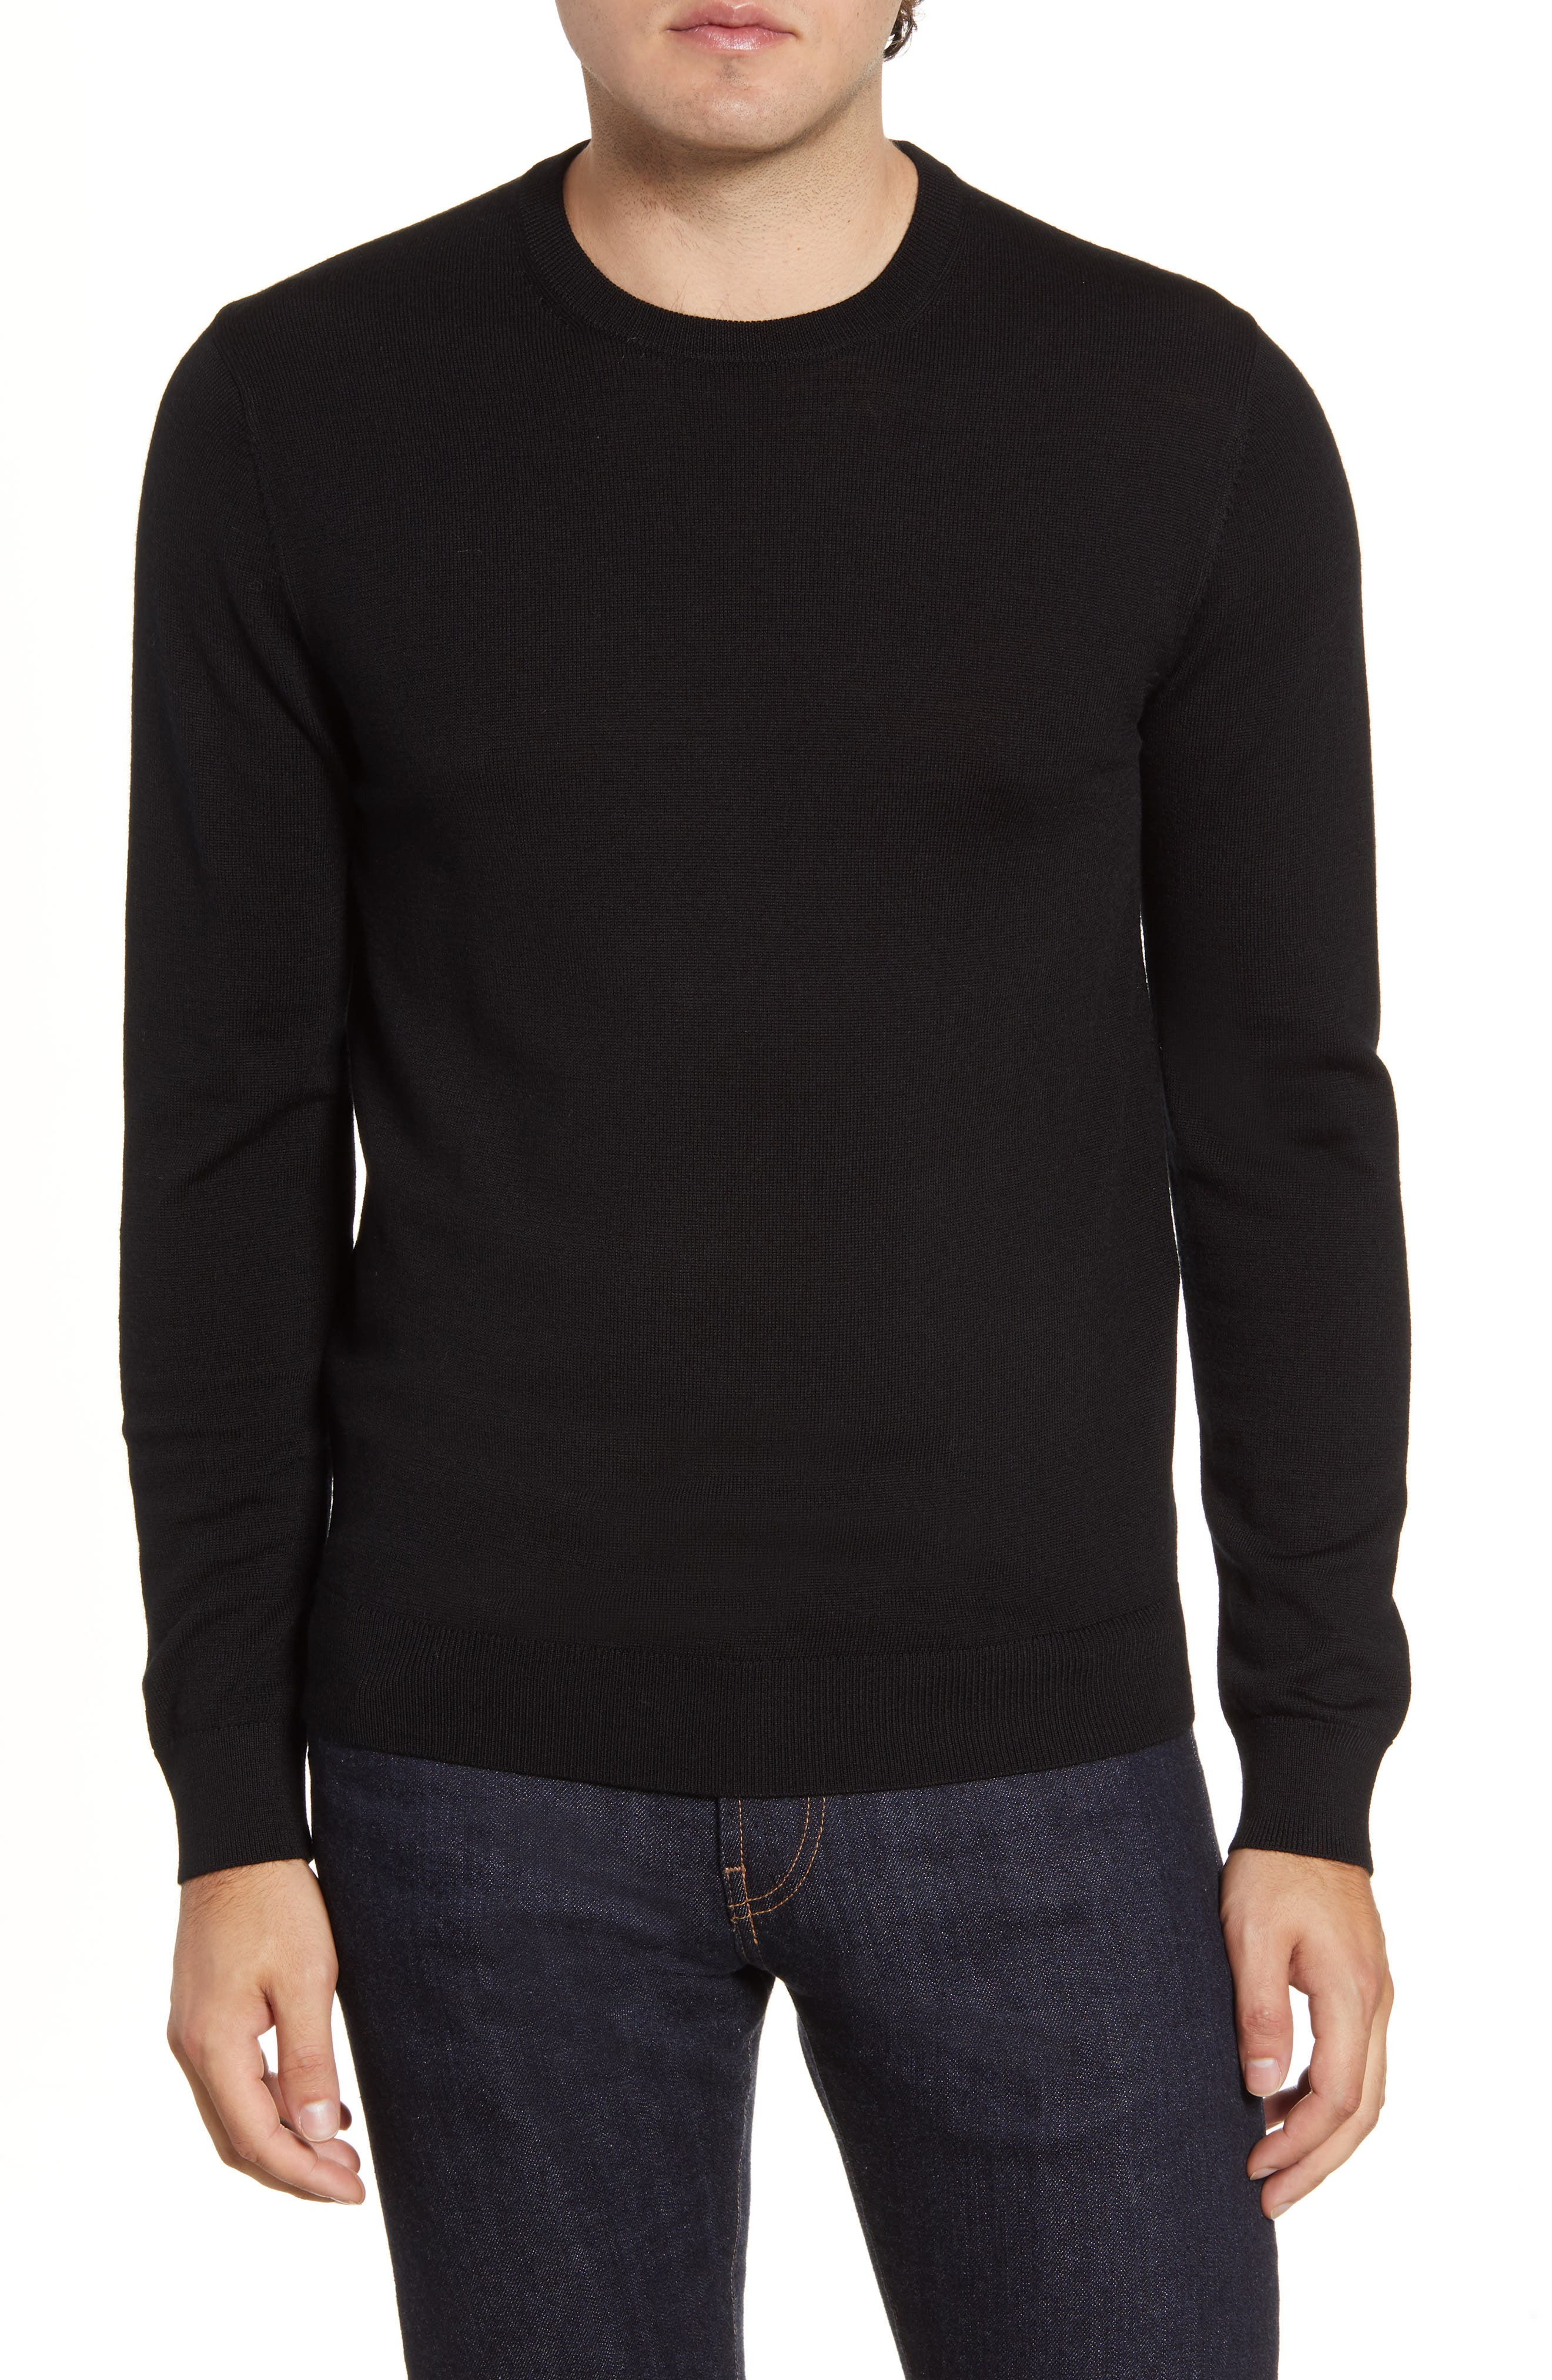 Slim and modern, this handsome crewneck sweater is knit in rich merino wool and framed in soft ribbed trim. Style Name: Bonobos Slim Fit Merino Wool Crewneck Sweater. Style Number: 5901825. Available in stores.